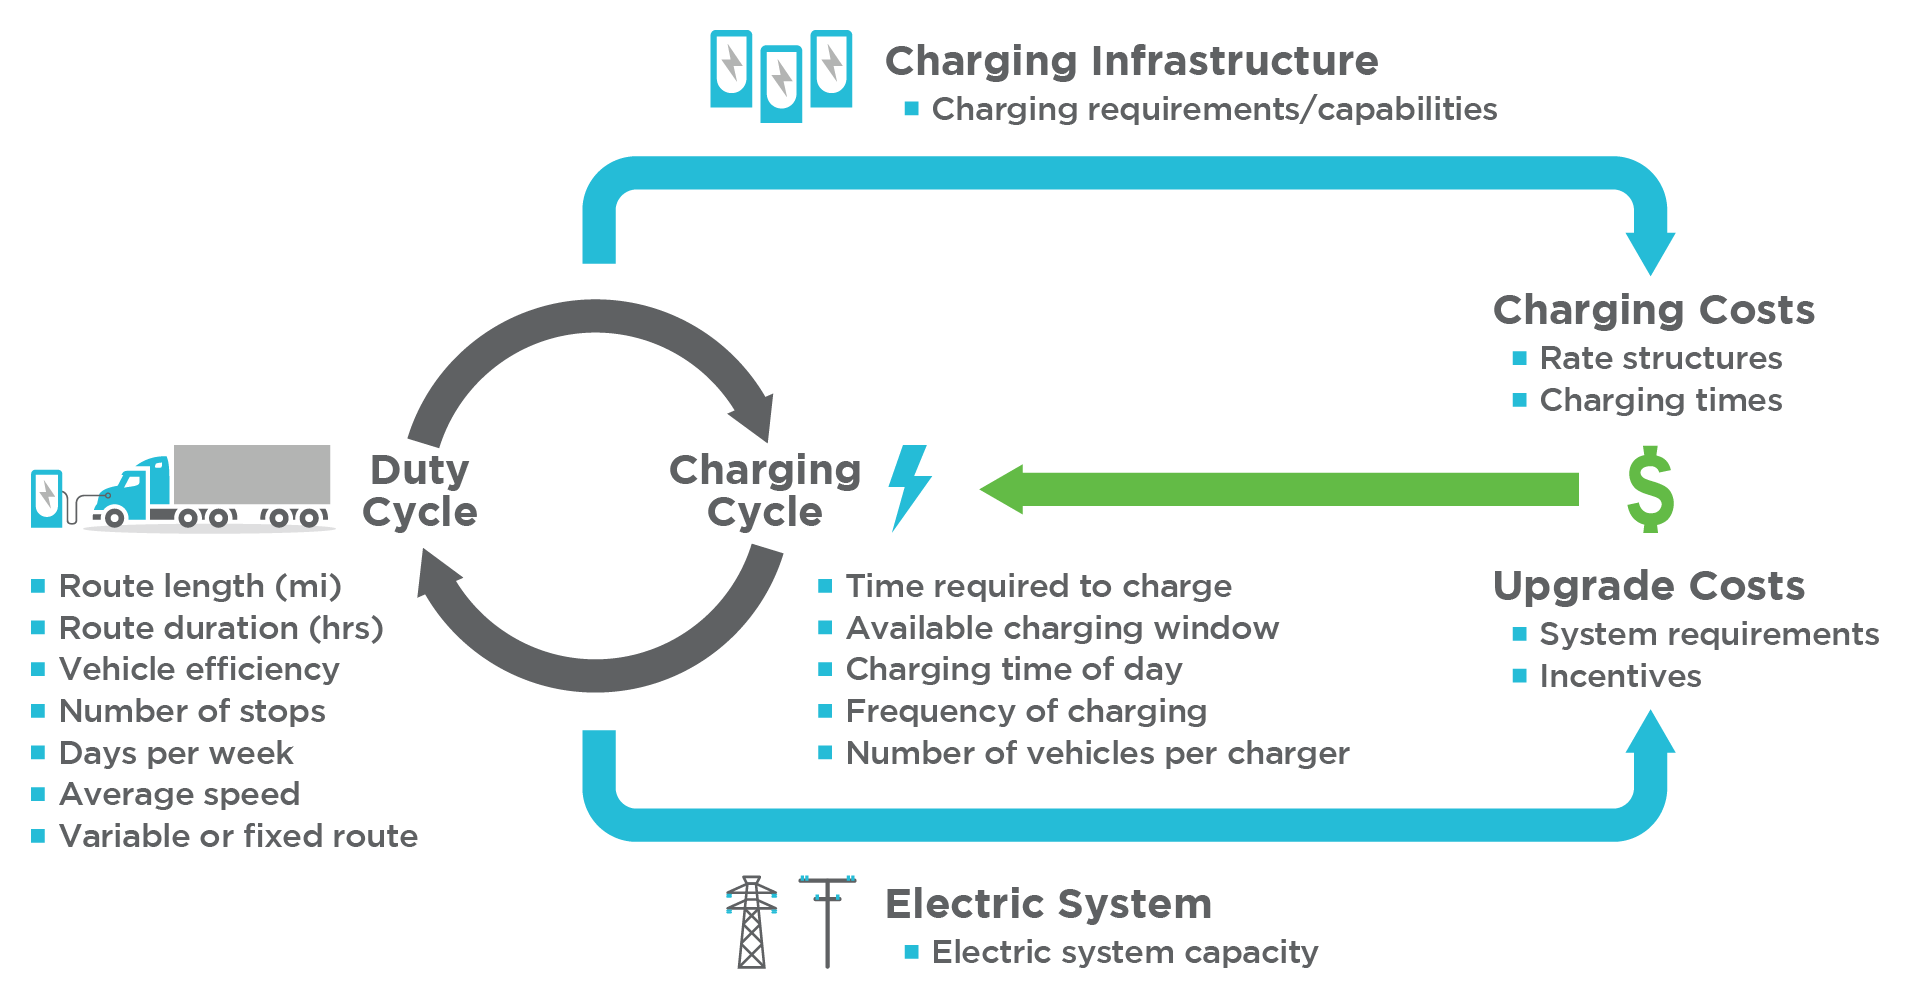 Charging Infrastructure: Duty Cycle, Charging Cycle, Charging Costs, Upgrade Costs, Electric System